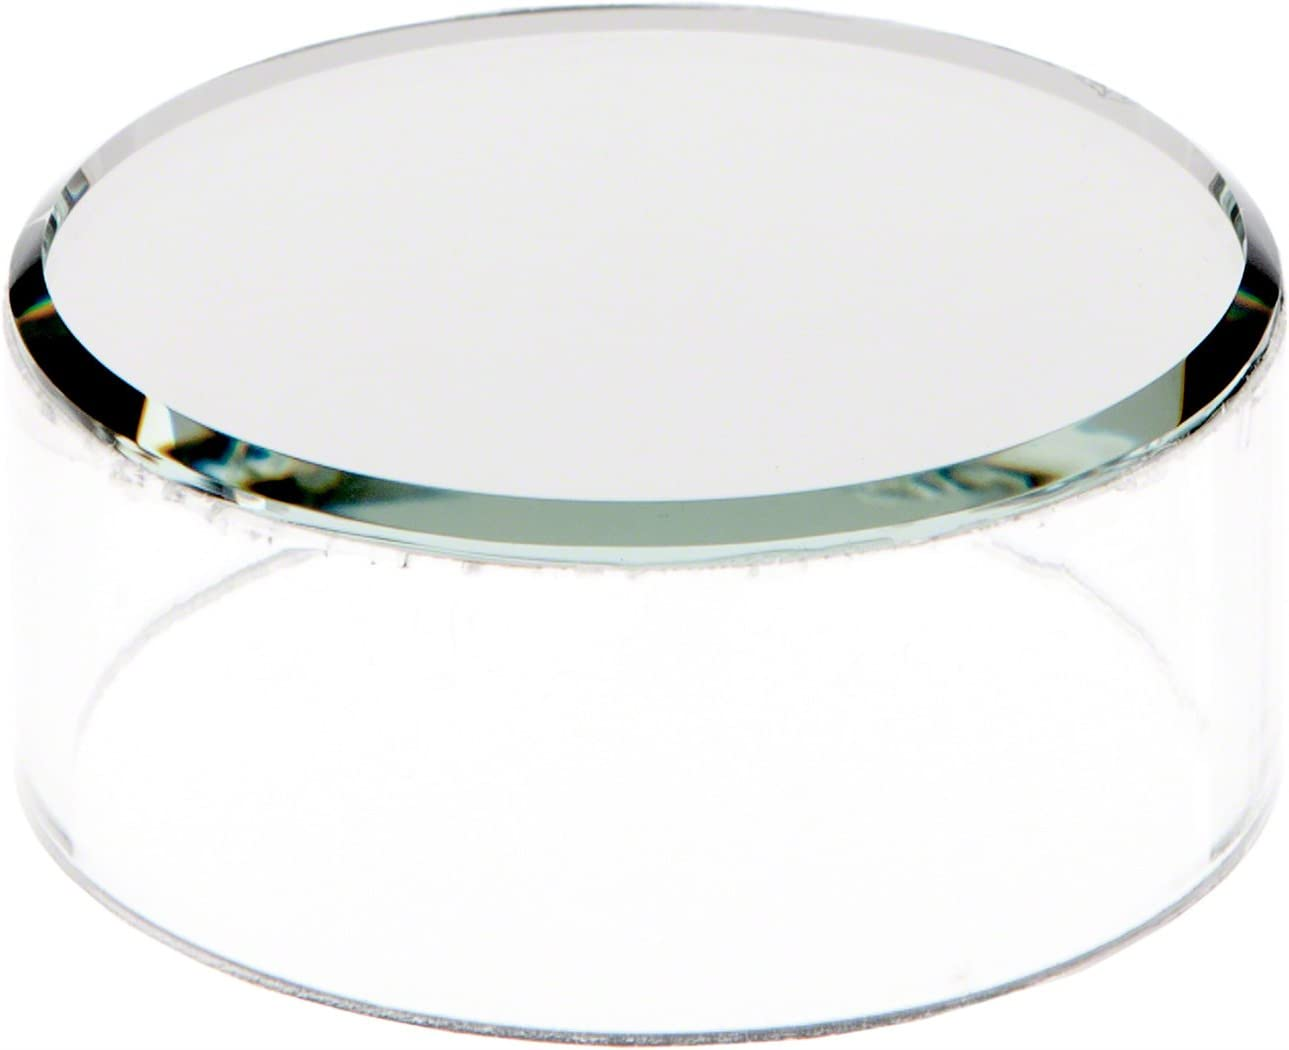 Plymor Clear Acrylic Cylinder Display Riser with Mirror Top, 1